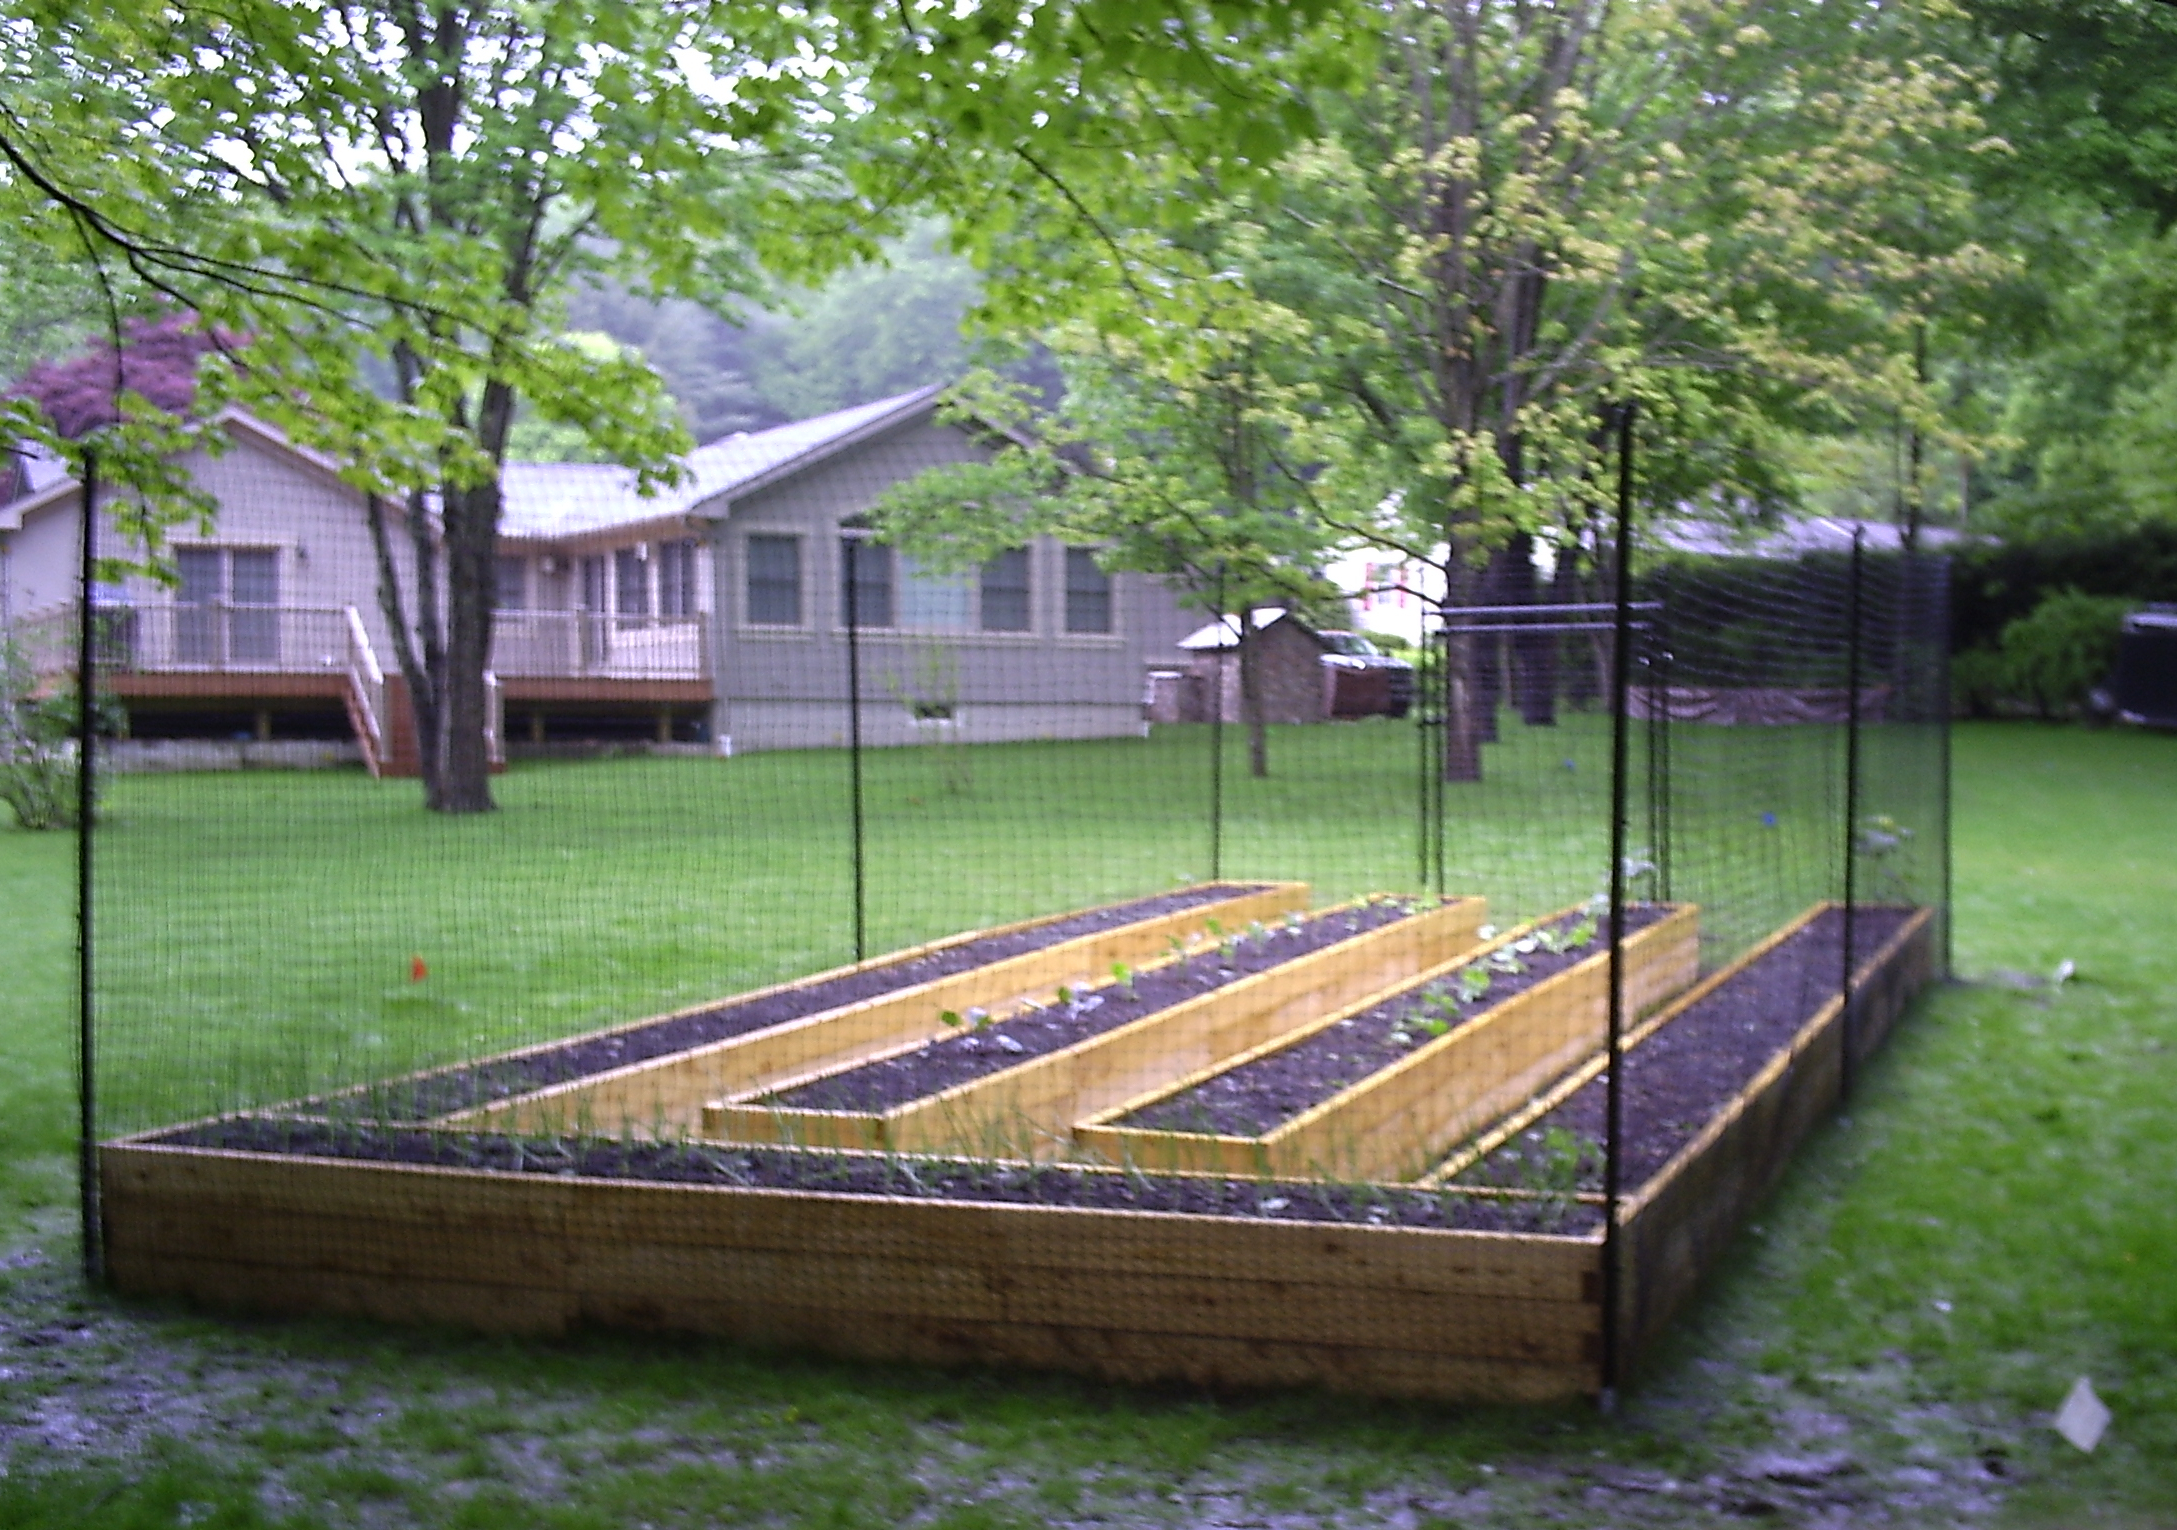 Garden Fence Ideas Home Landscape Design intended for Backyard Garden Fence